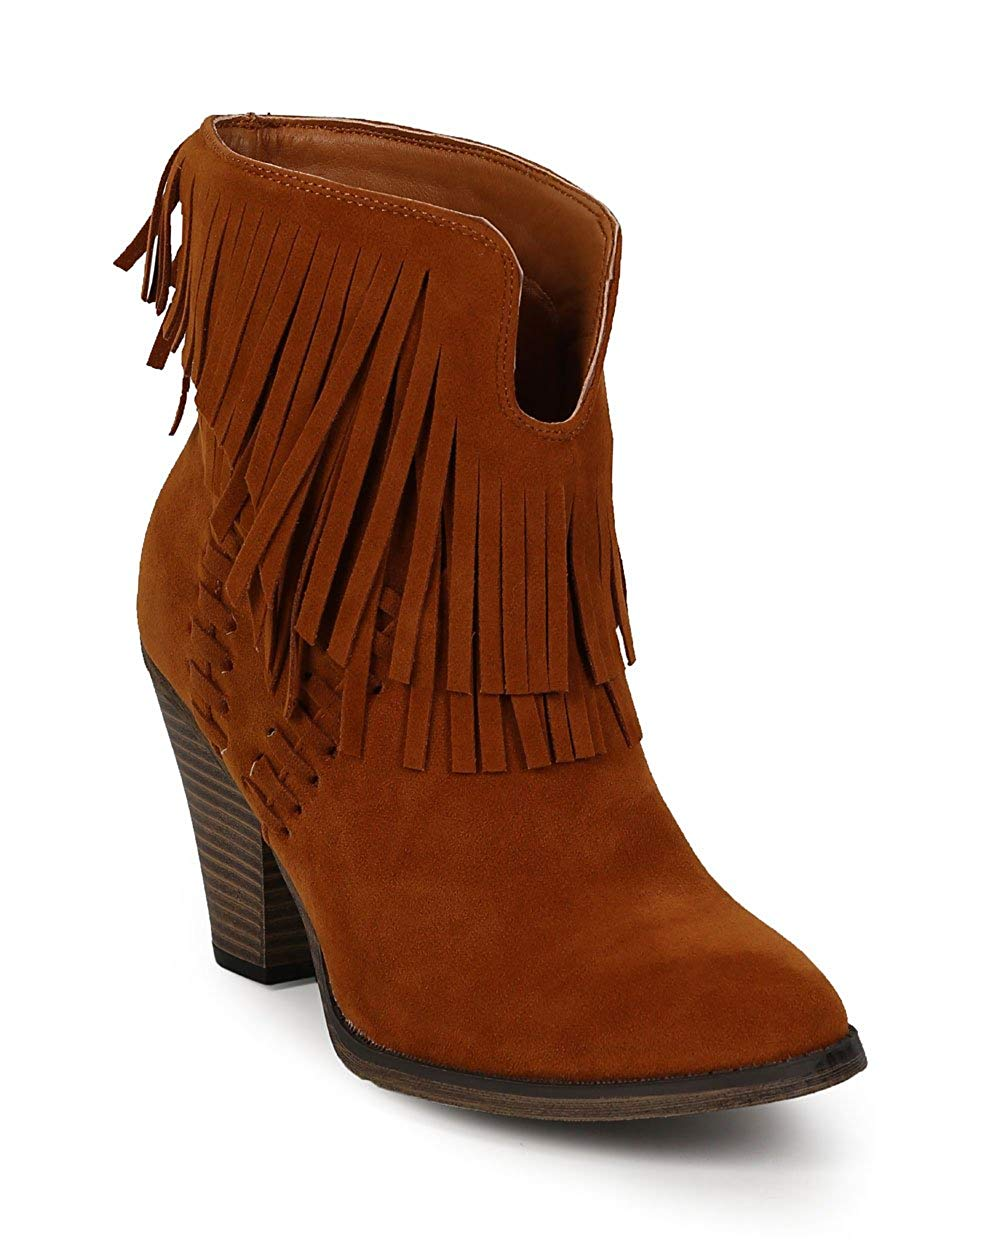 Nature Breeze Women Suede Almond Toe Fringe Chunky Heel Ankle Bootie CI62 - Tan Faux Suede